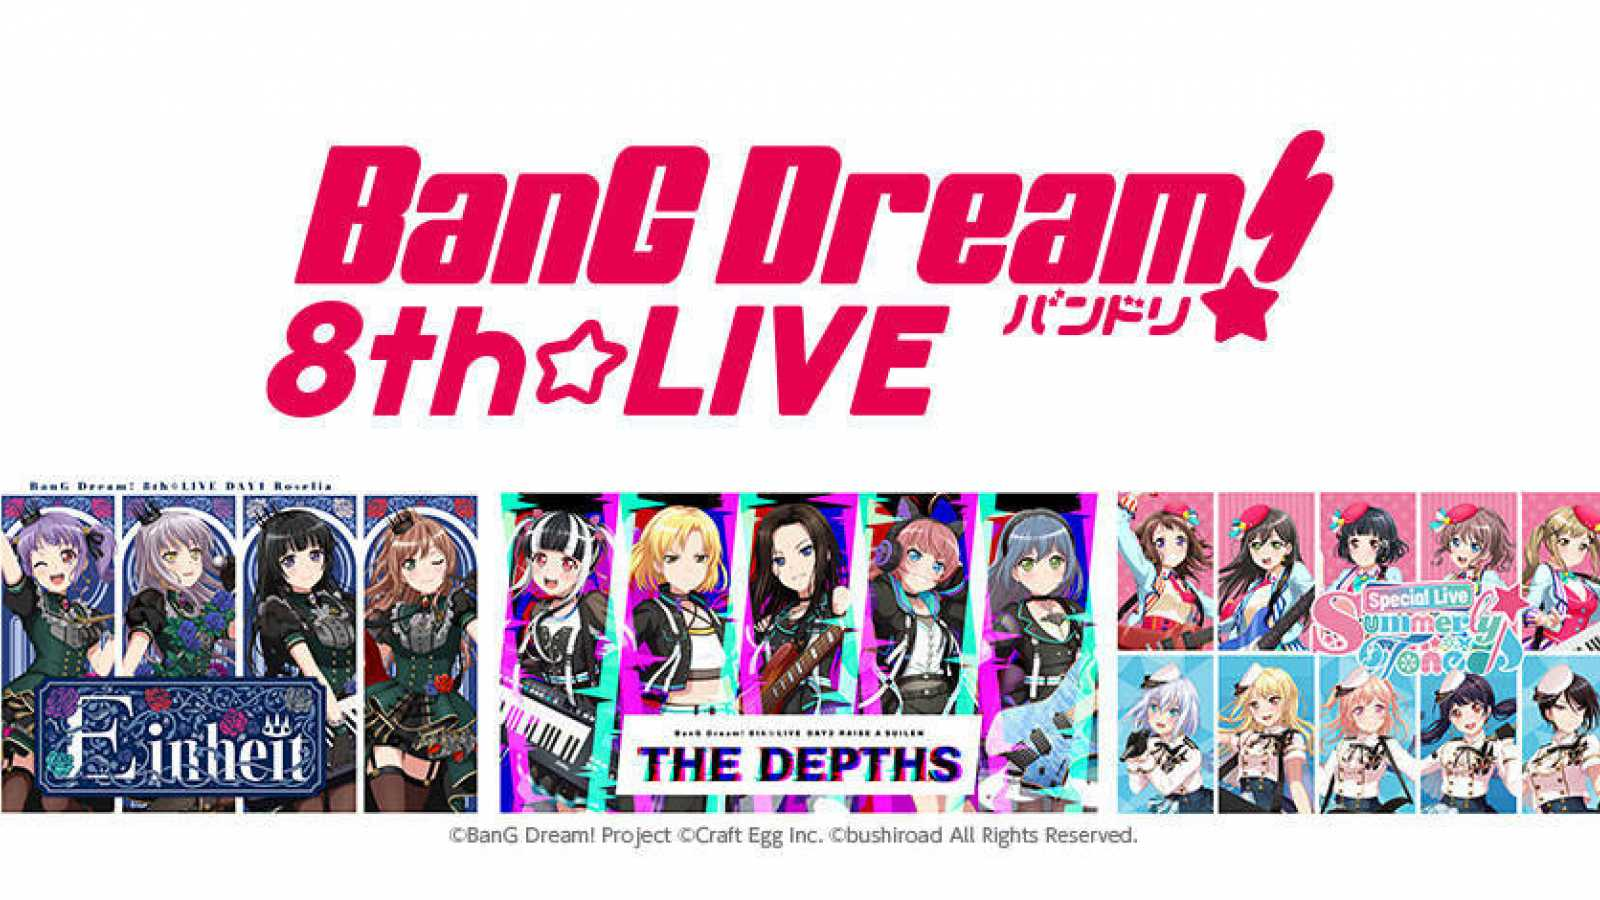 """BanG Dream! 8th☆LIVE"" Summer Outdoors 3DAYS to Stream Worldwide © BanG Dream! Project ©Craft Egg Inc. ©bushiroad All Rights Reserved."